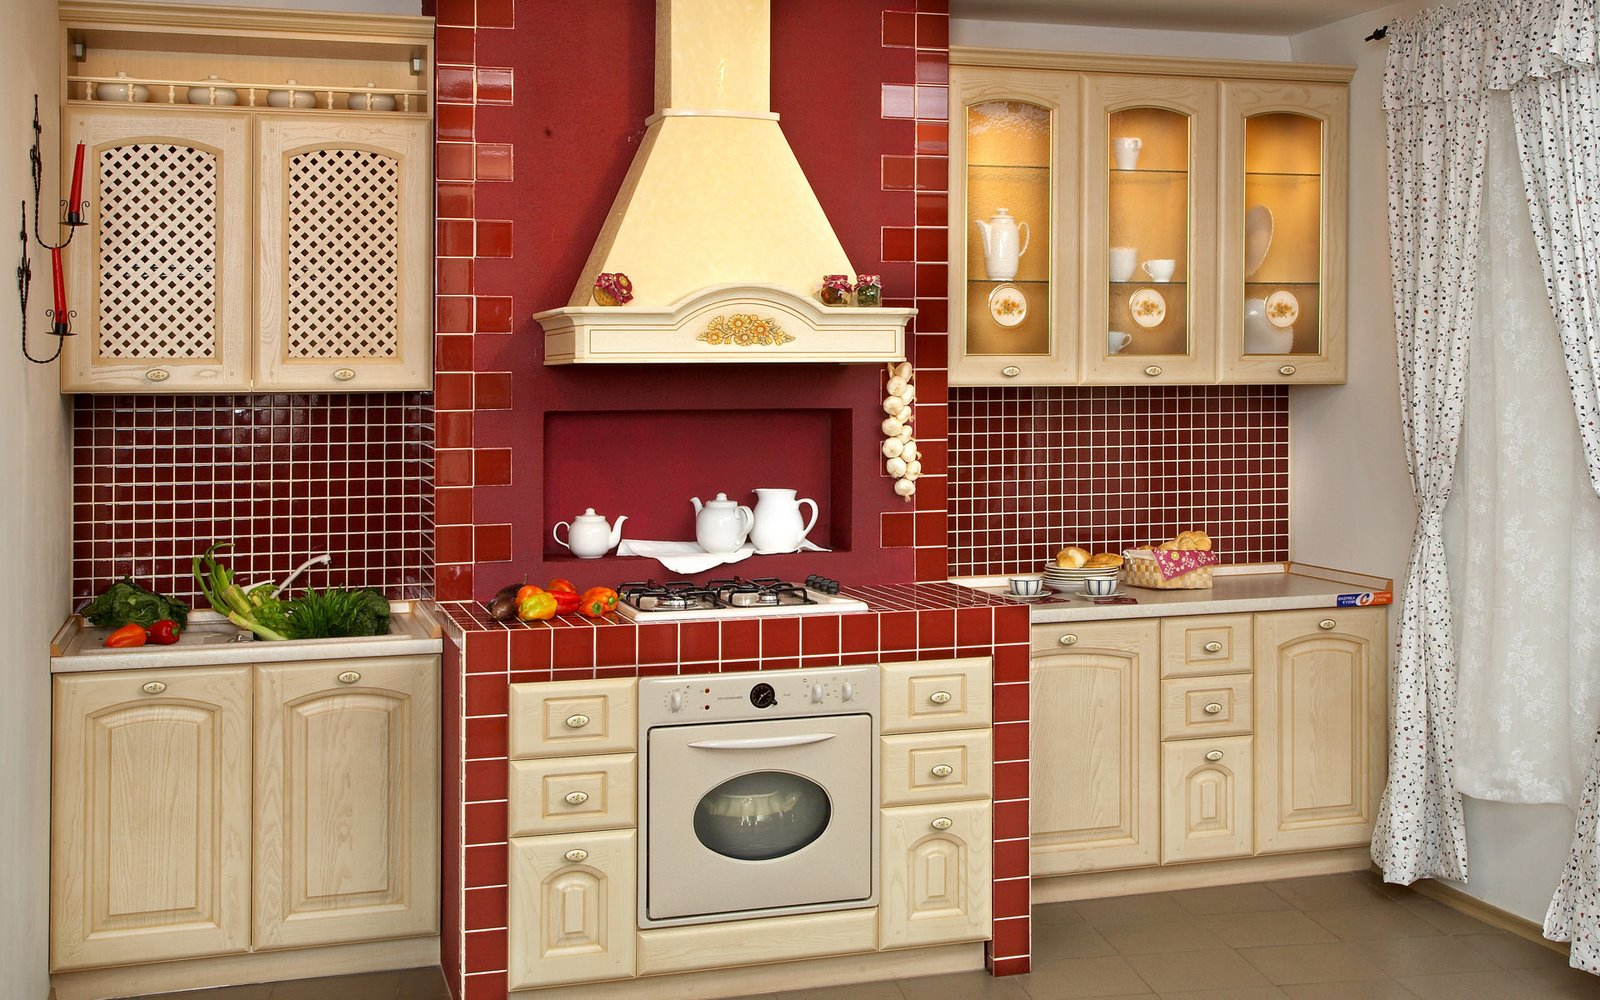 Modern kitchen designs in red interior decorating home for Old kitchen ideas